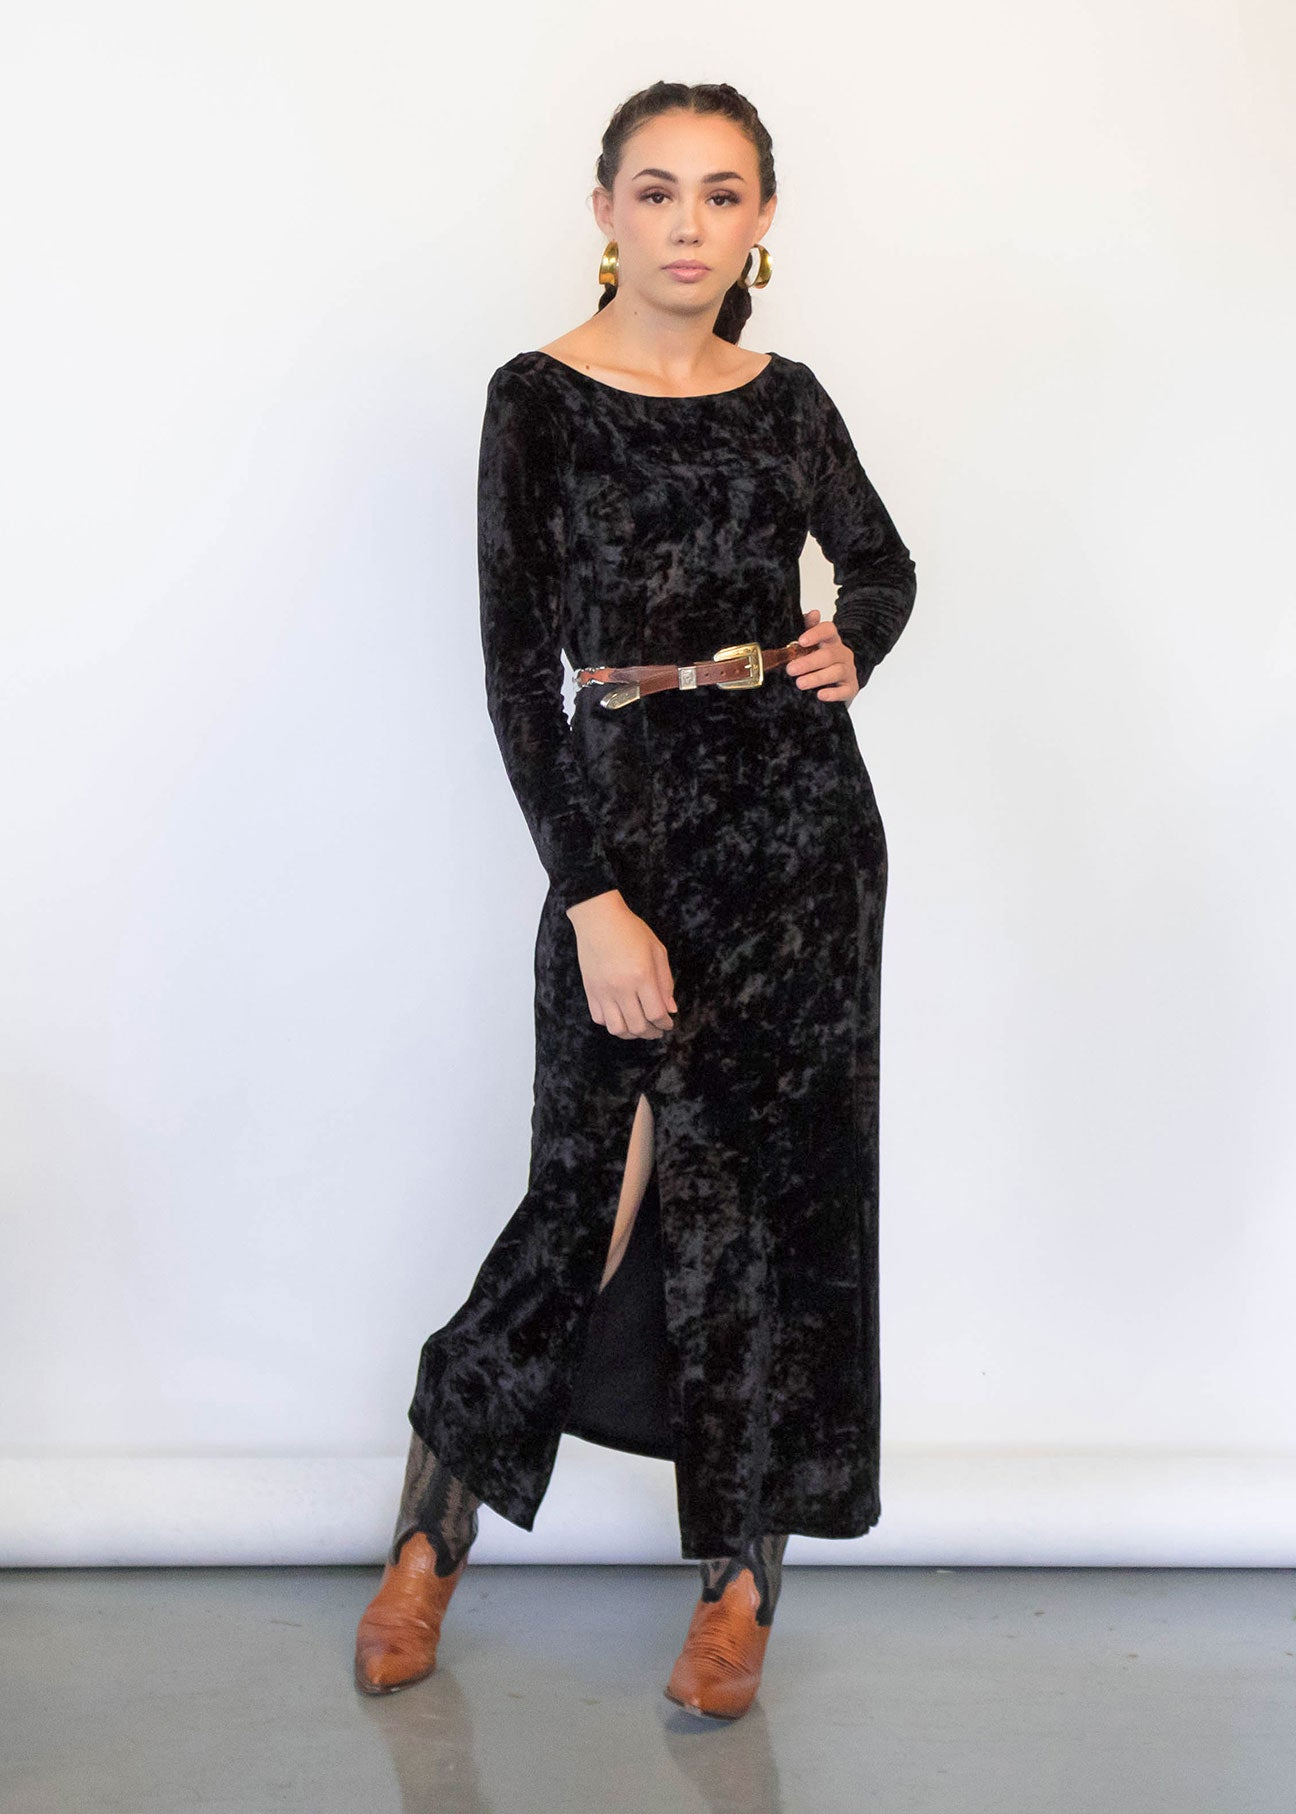 90s Crushed Velvet Maxi Dress